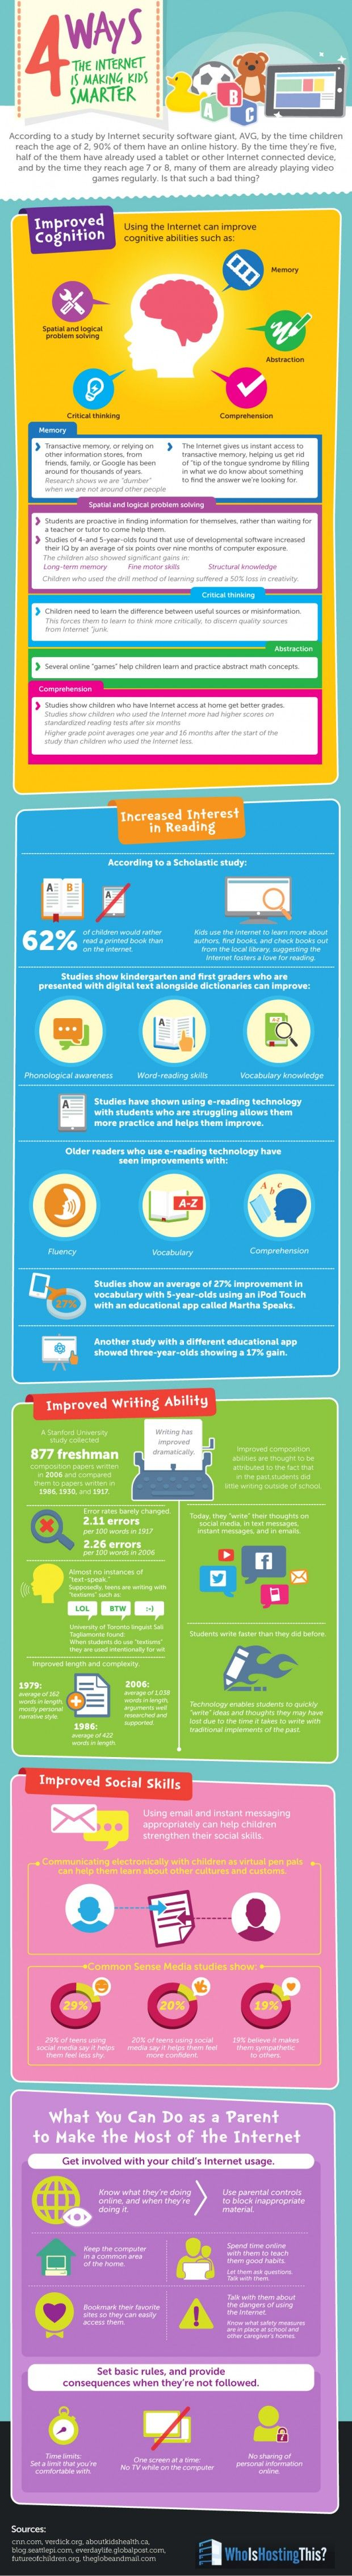 #mlearning #infographic #edtech #edchat The Internet makes doing research a much…